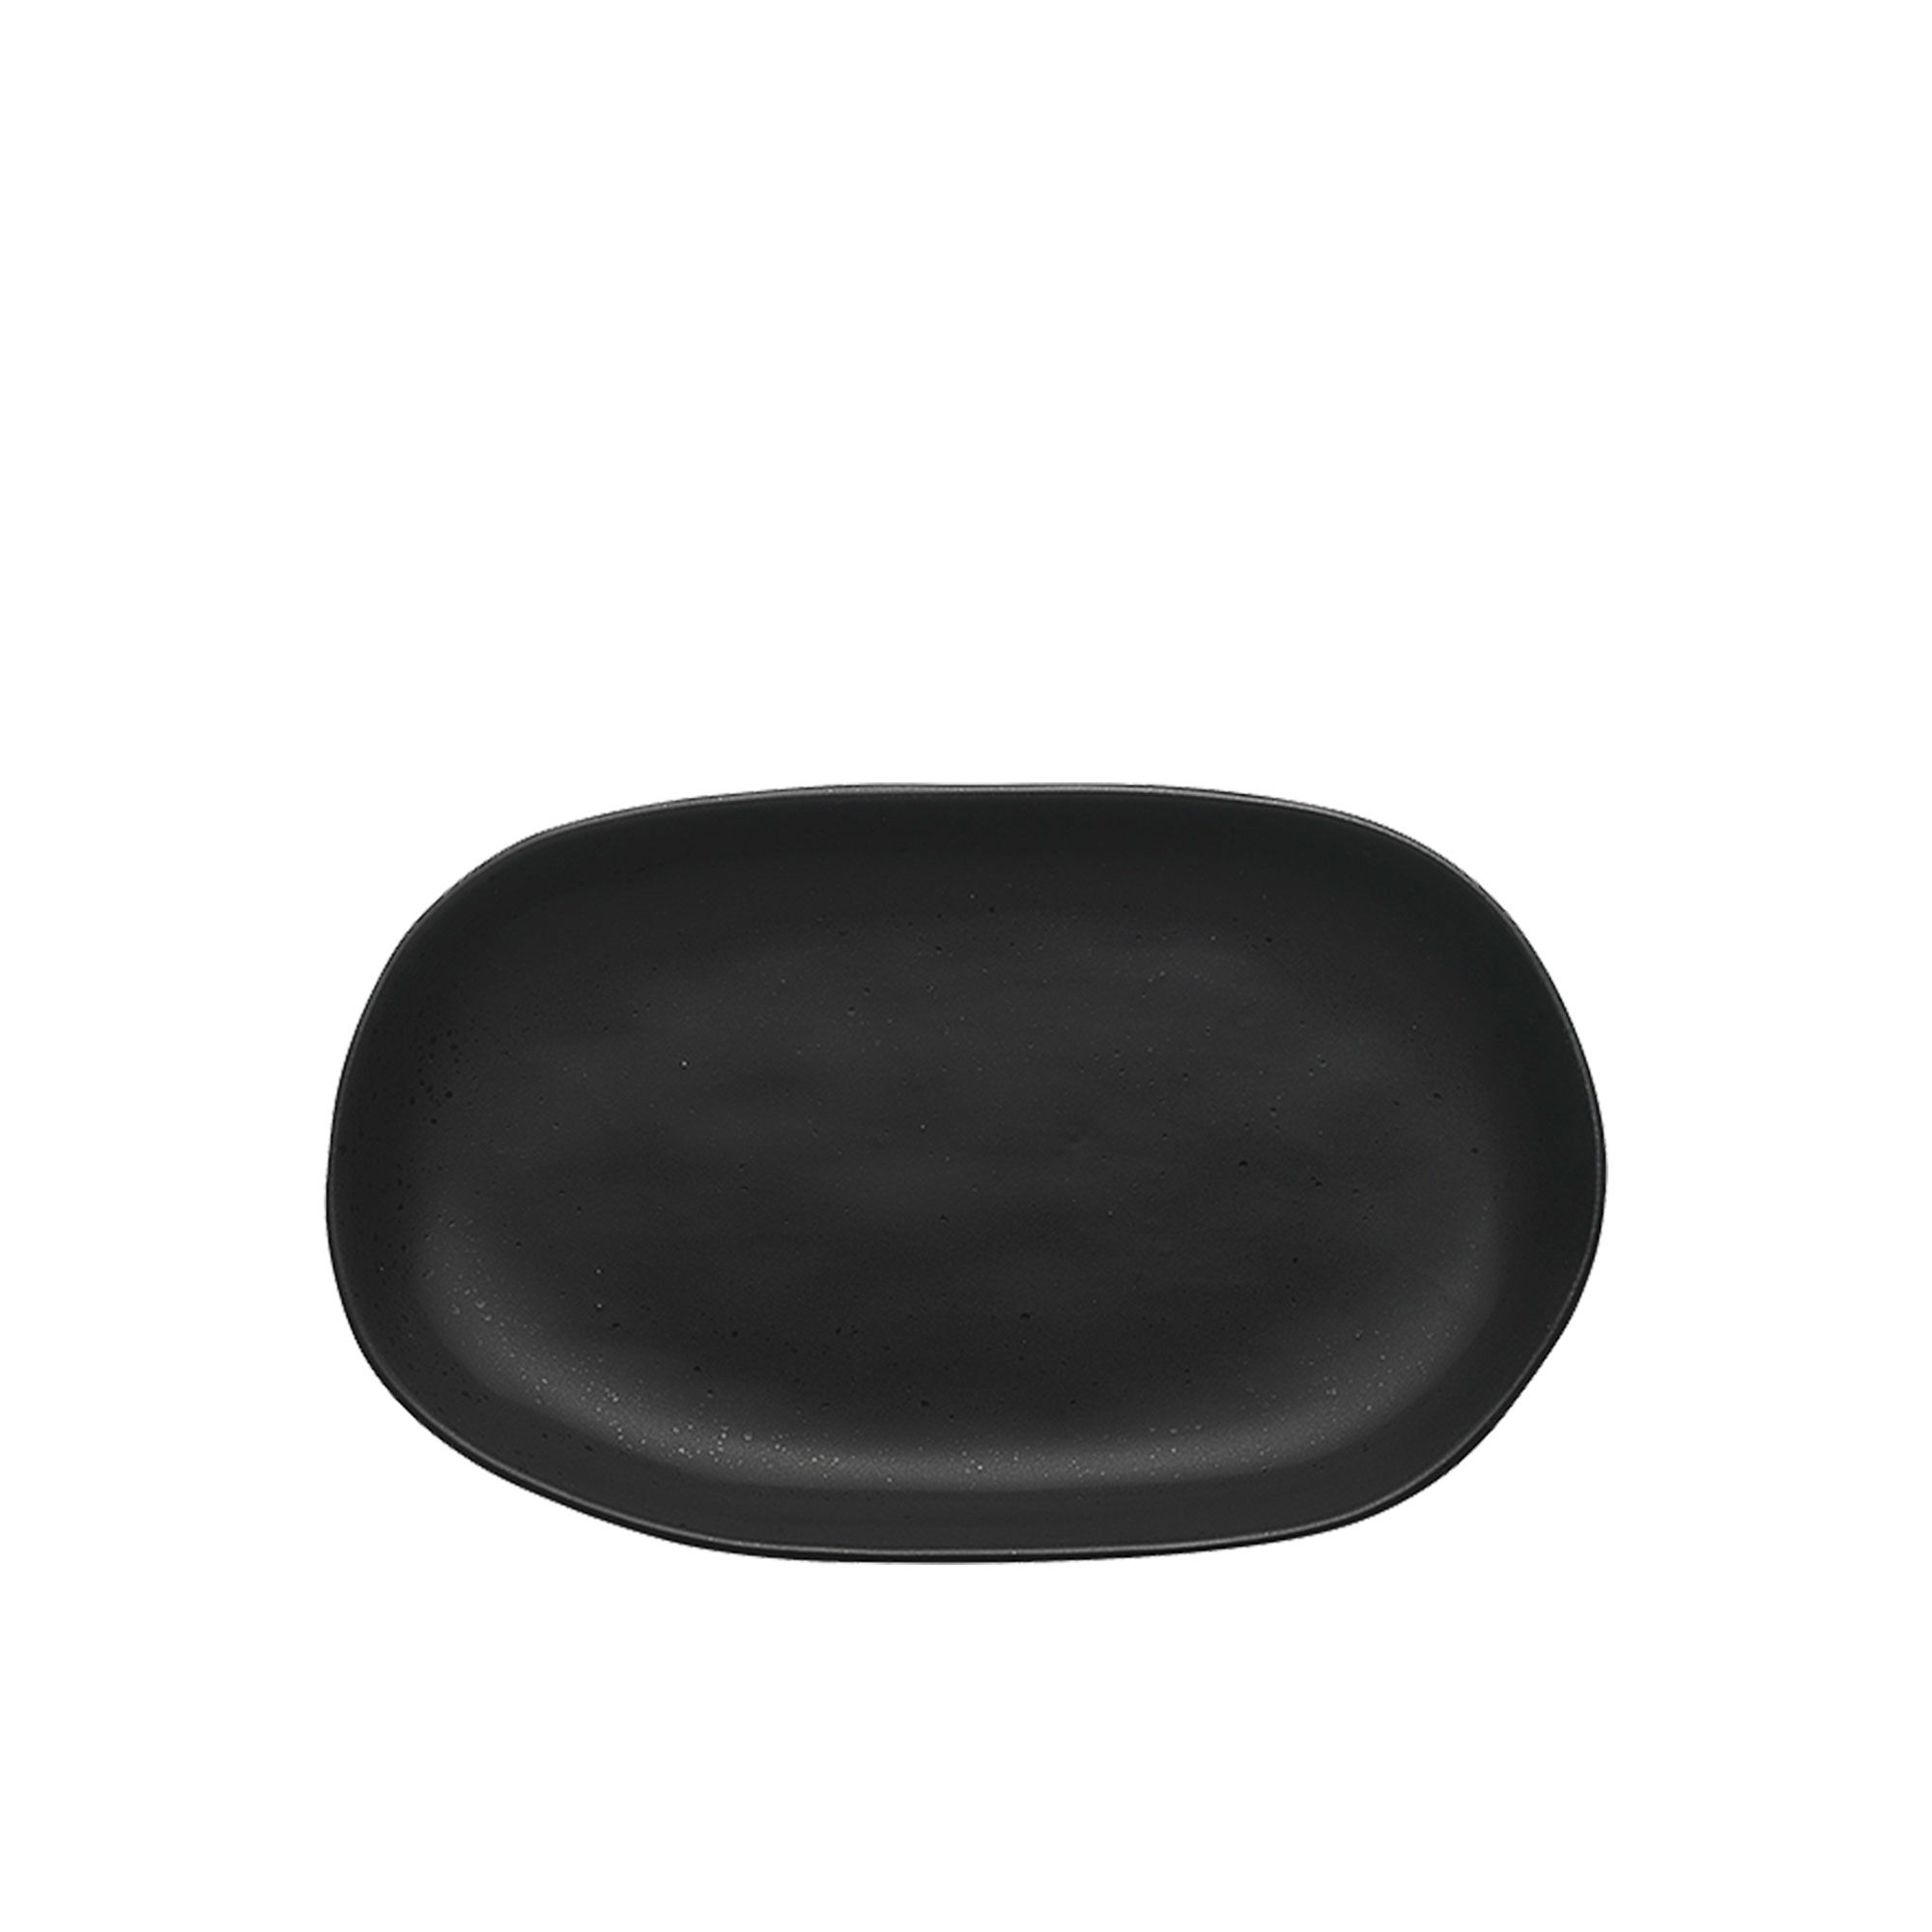 Ecology Speckle Small Shallow Bowl 22x13.5x3cm Ebony